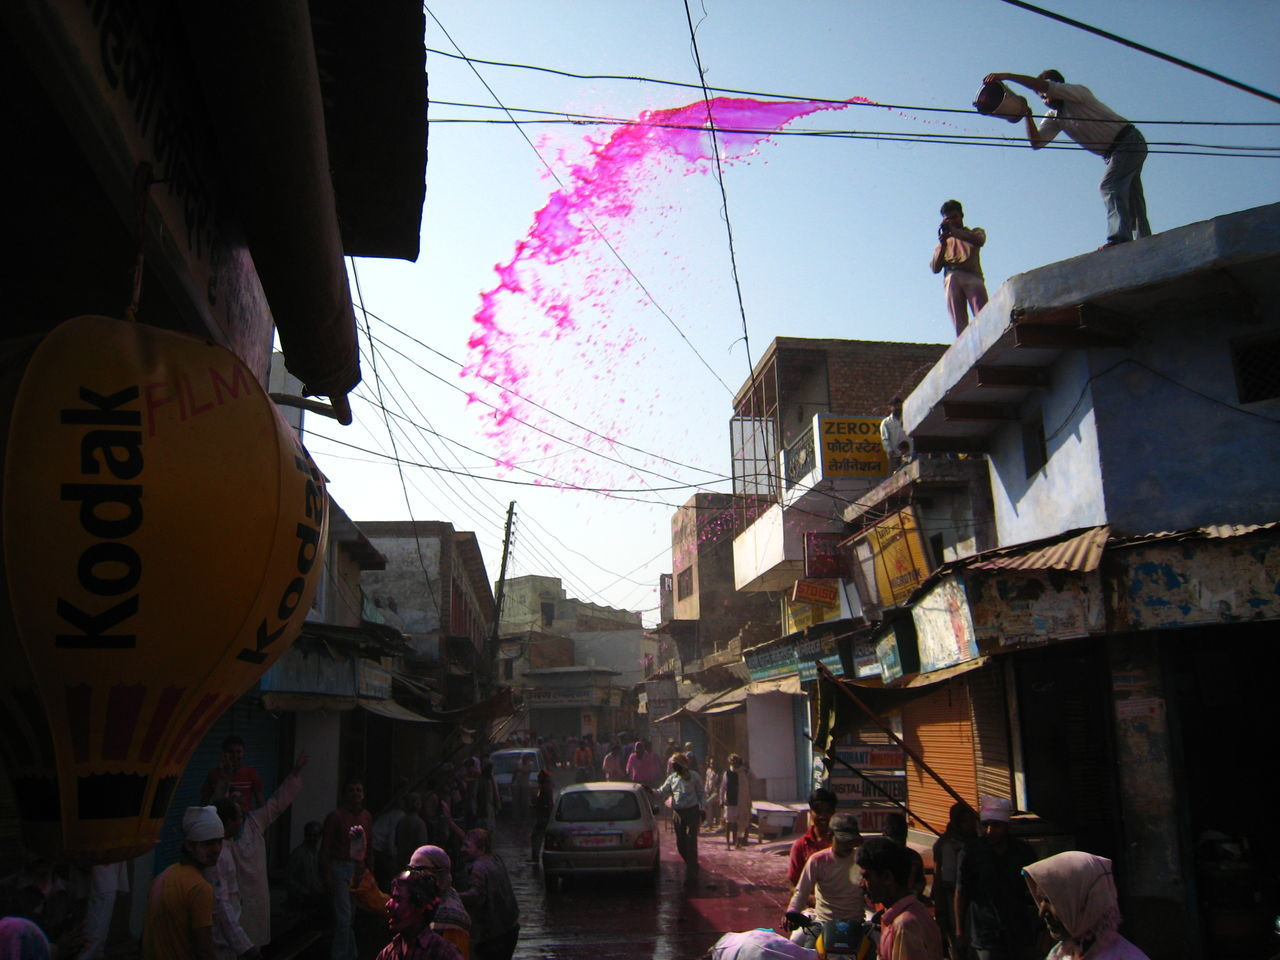 Adult Building Exterior Day Frozen Time Holi Festival Holi In India Holi Week Holiday In Liquid Men Outdoors People Pink Real India Still Finds Itself In Countryside Real People Sky Street Vrindaban